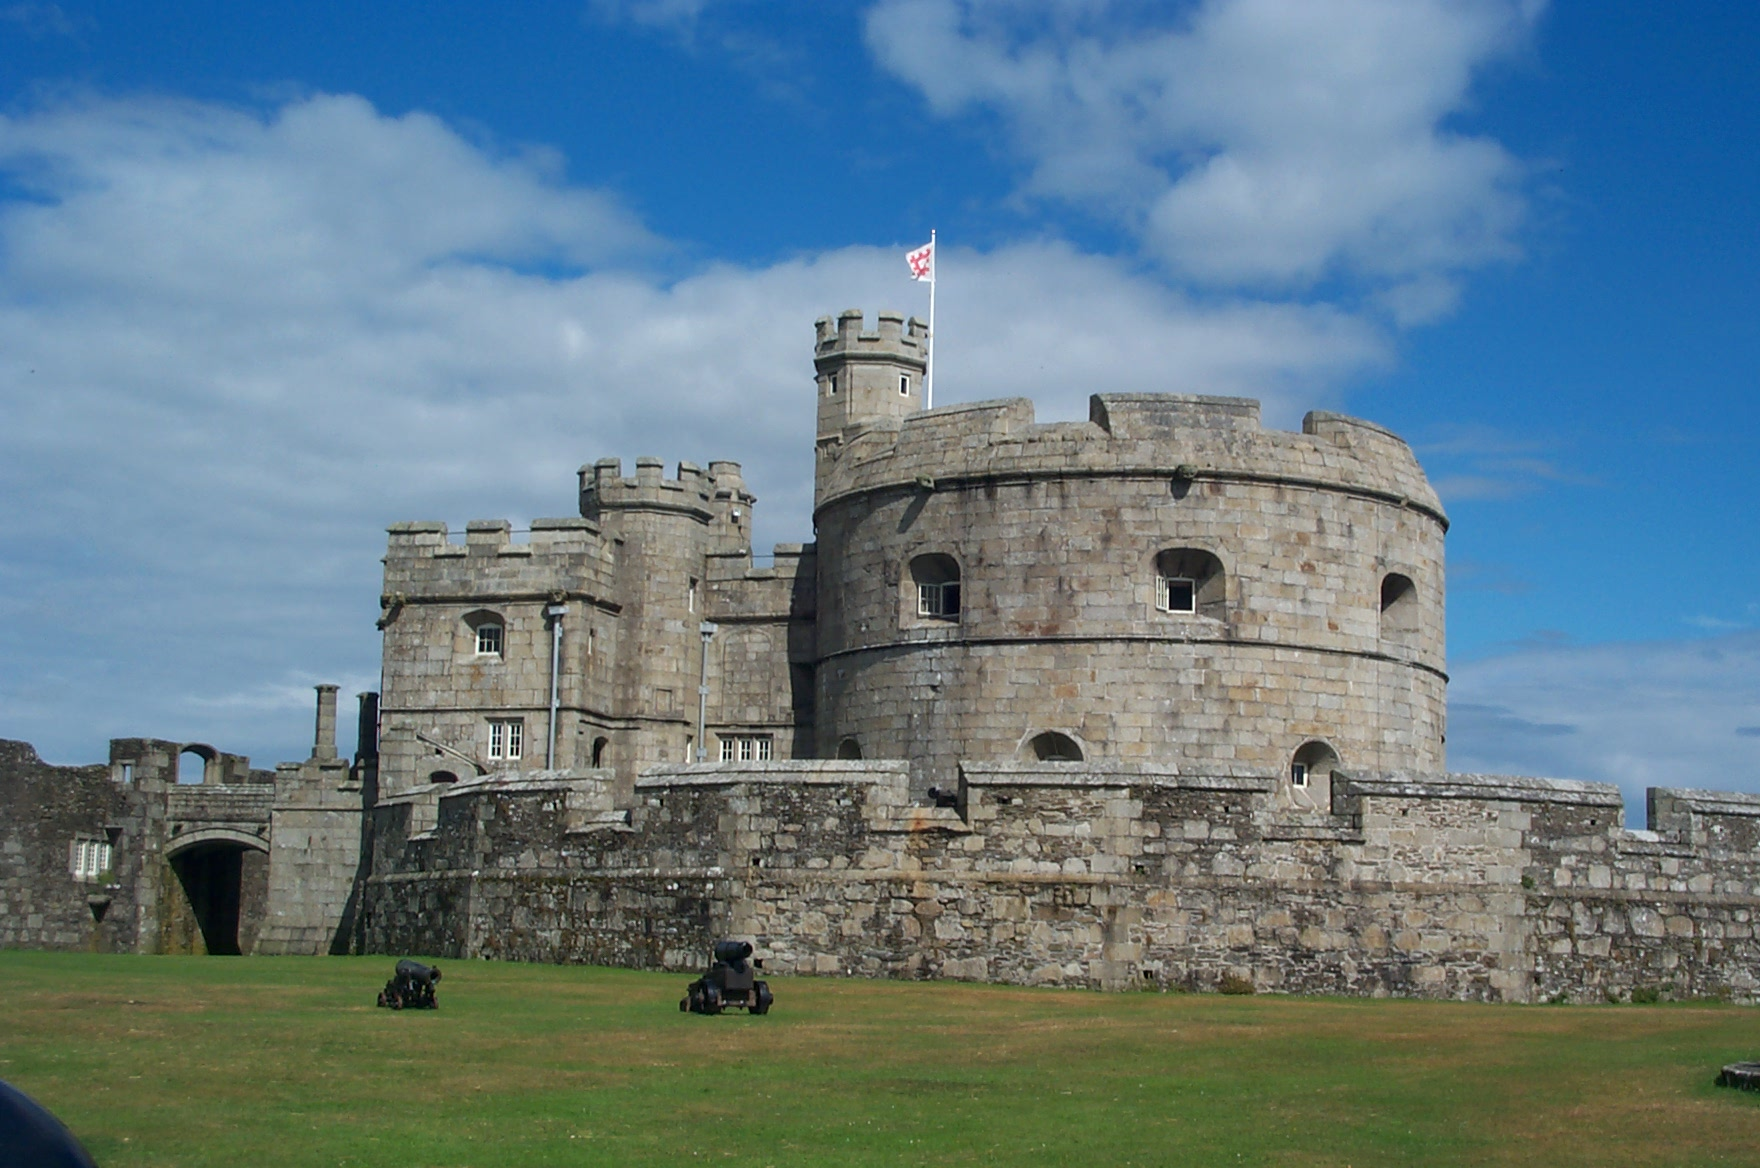 st mawes castle - wikipedia